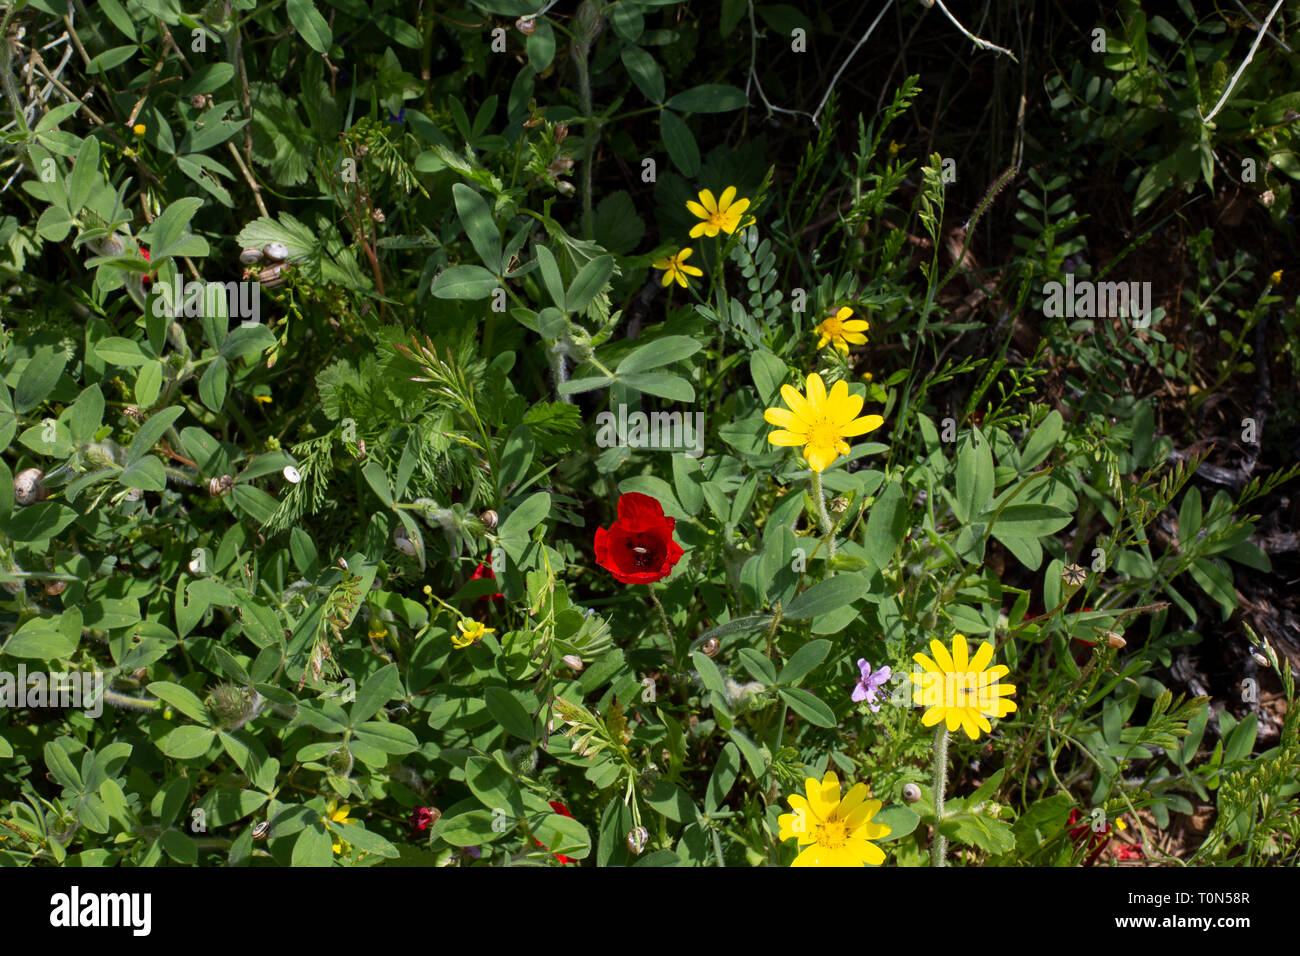 A field of Israeli wildflowers blooming in vibrant colours in spring. Photographed in Israel in March Stock Photo